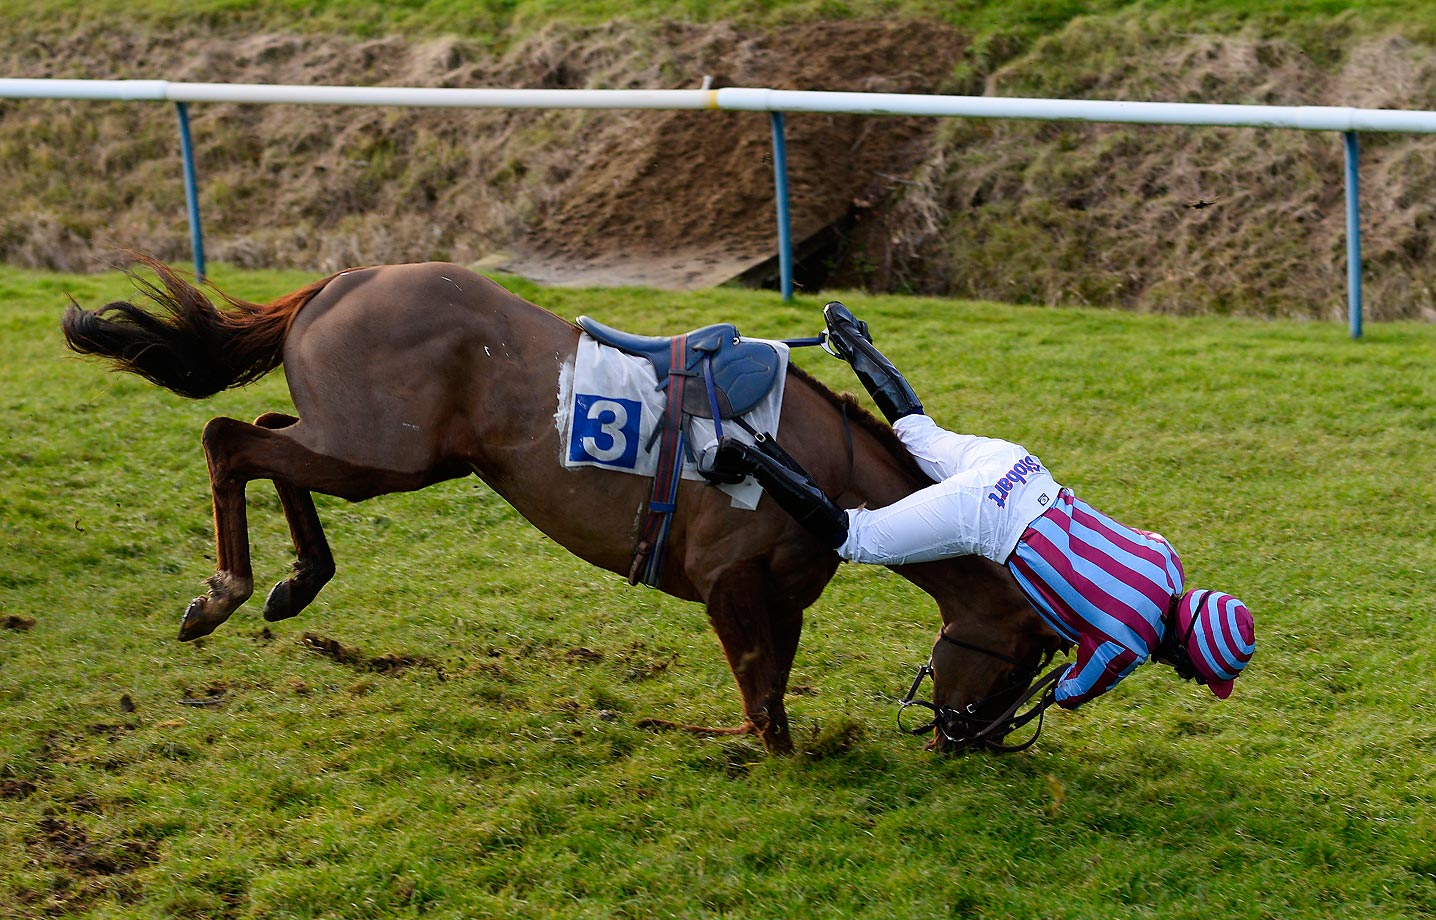 Lizzie Kelly, riding Benefique Royale, takes a tumble at the Leicester racecourse in England.